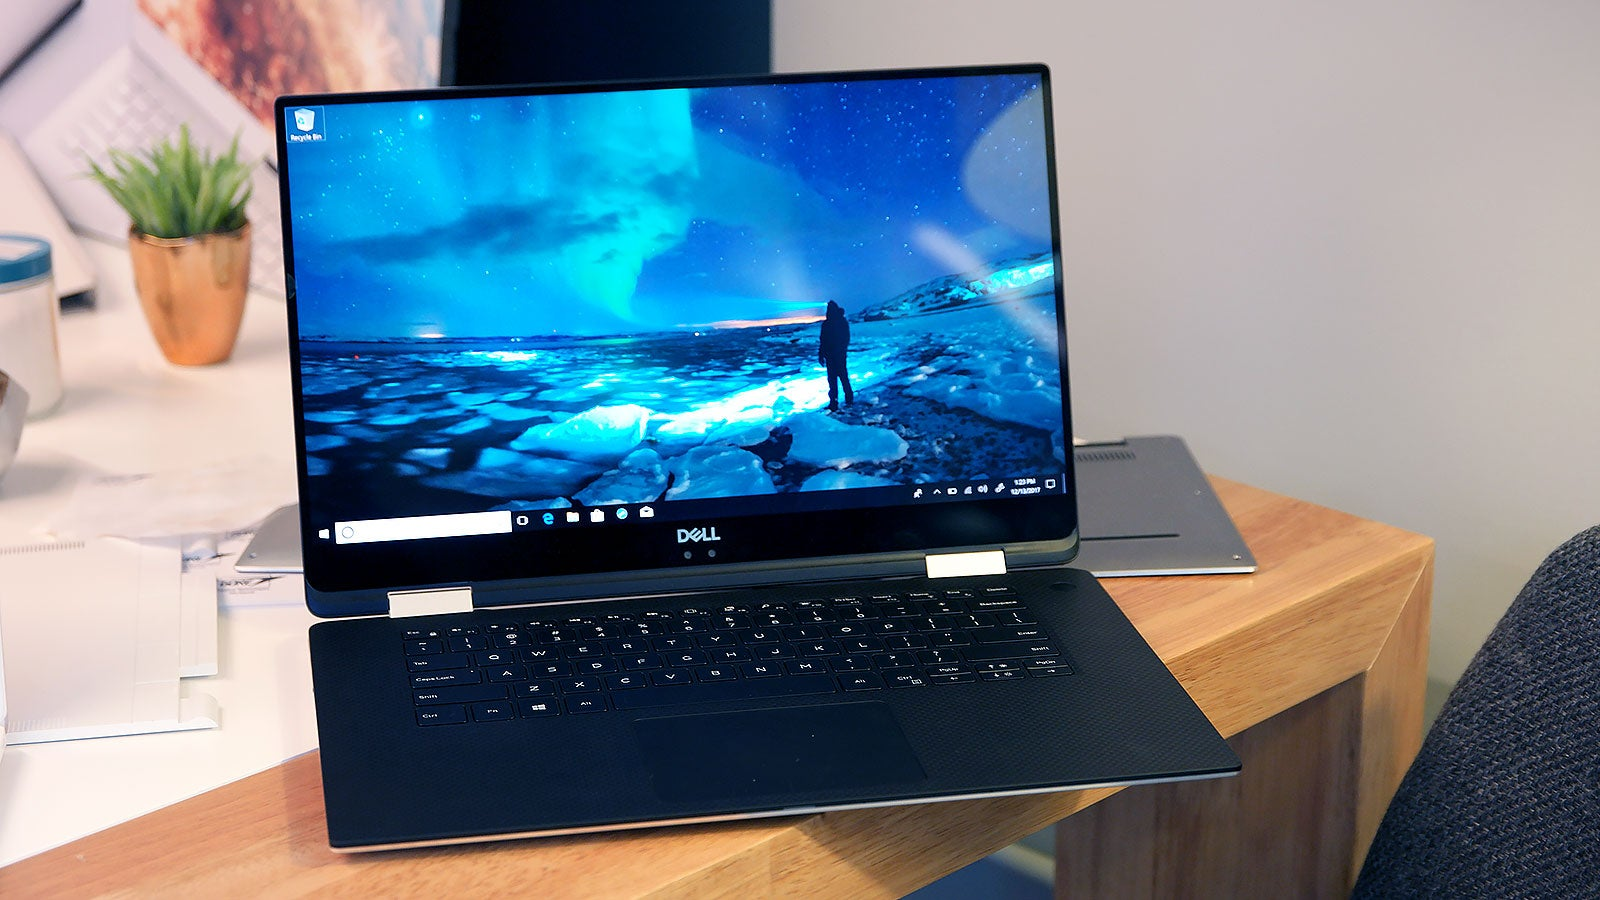 Dell S Xps 15 2 In 1 Wants To Be The Anti Macbook Pro